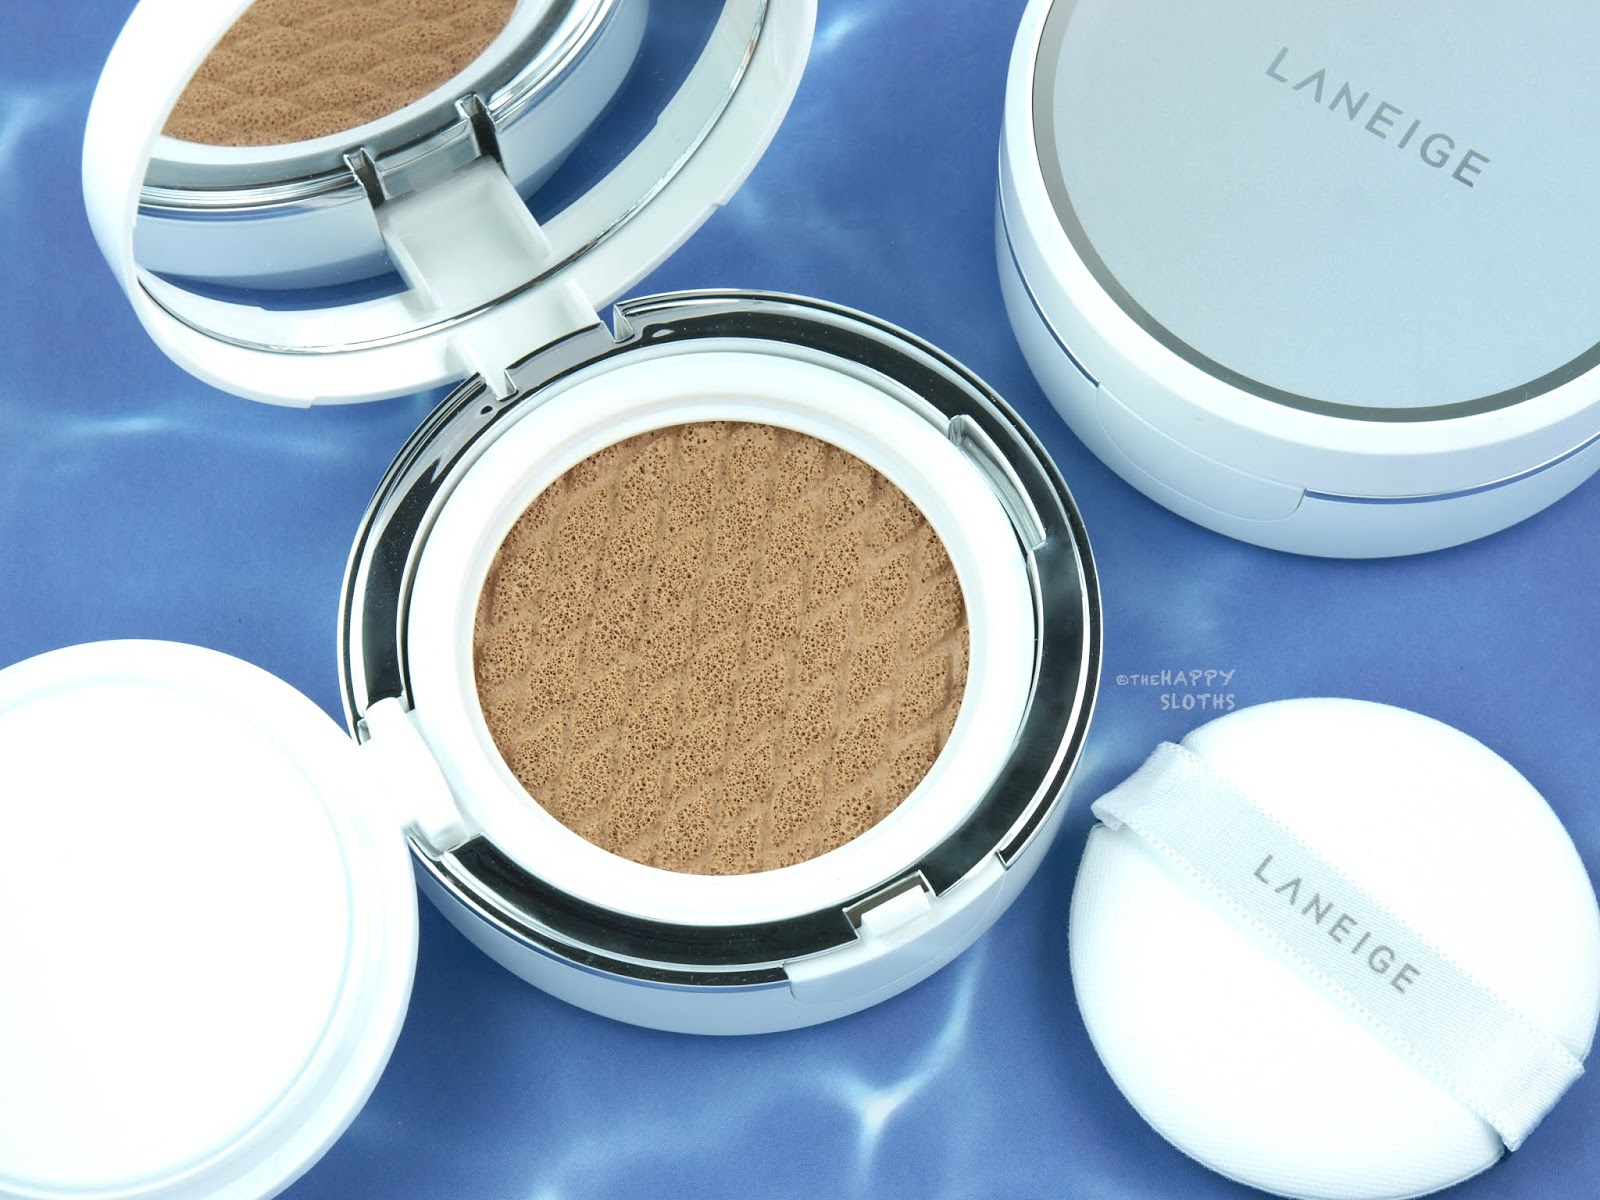 LANEIGE | BB Cushion Hydra Radiance SPF 50 | No. 21 Beige: Review and Swatches